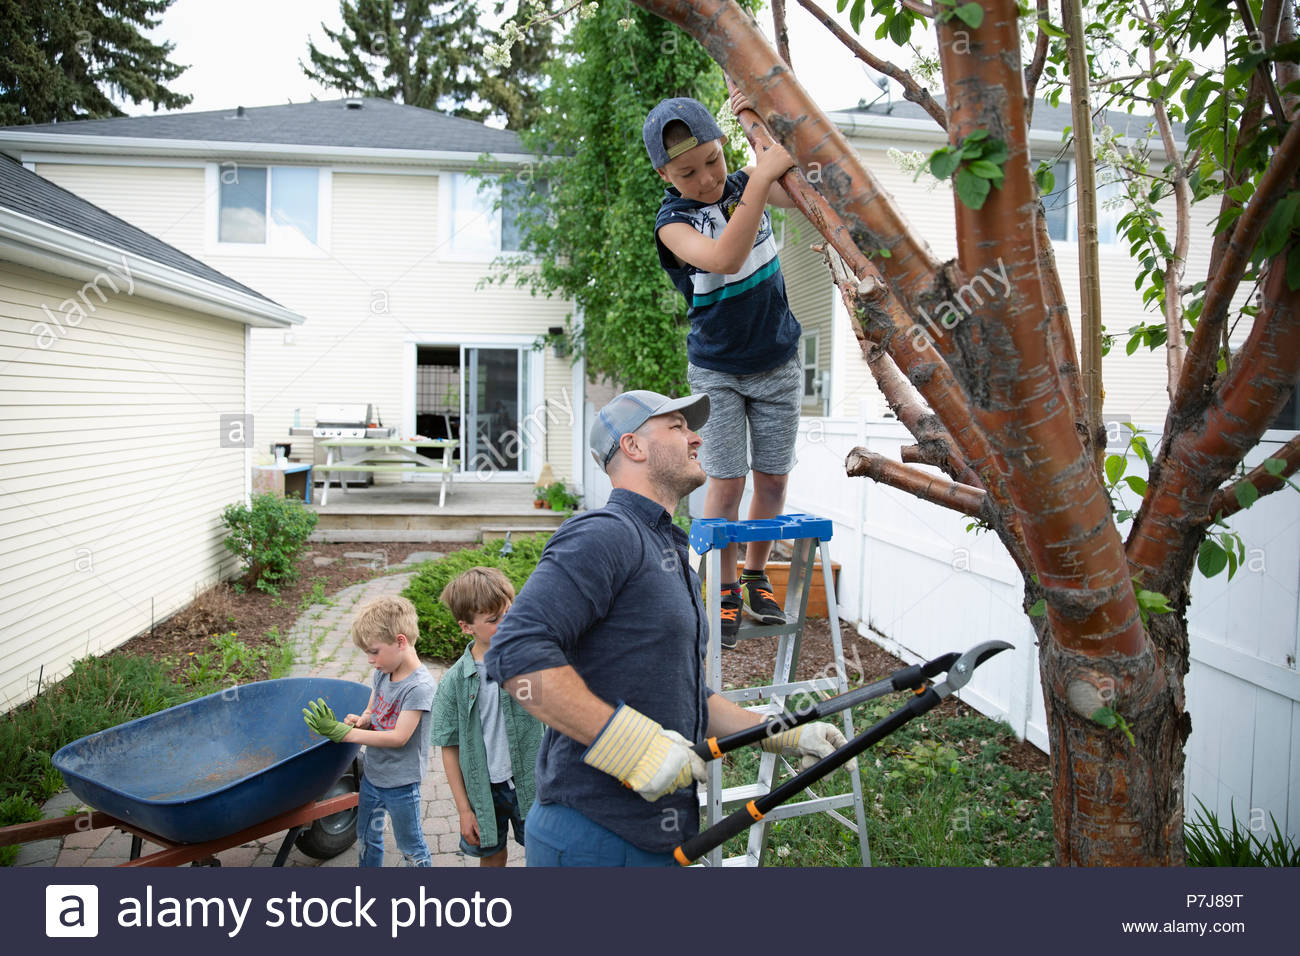 Father and sons doing yard work, pruning tree in back yard - Stock Image